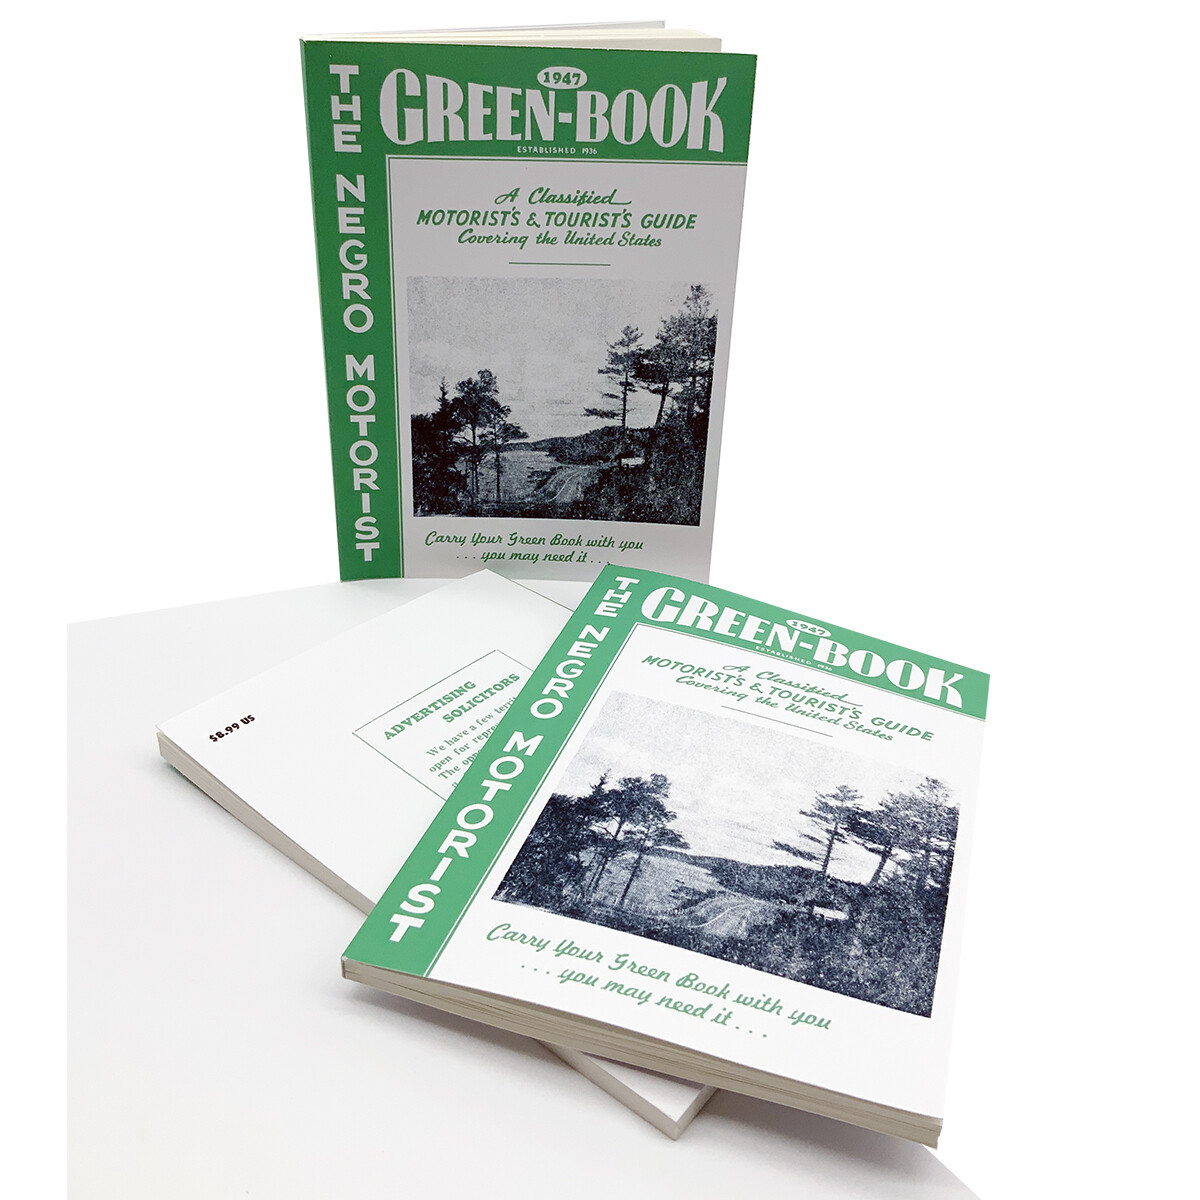 The Green Book 1947 Edition